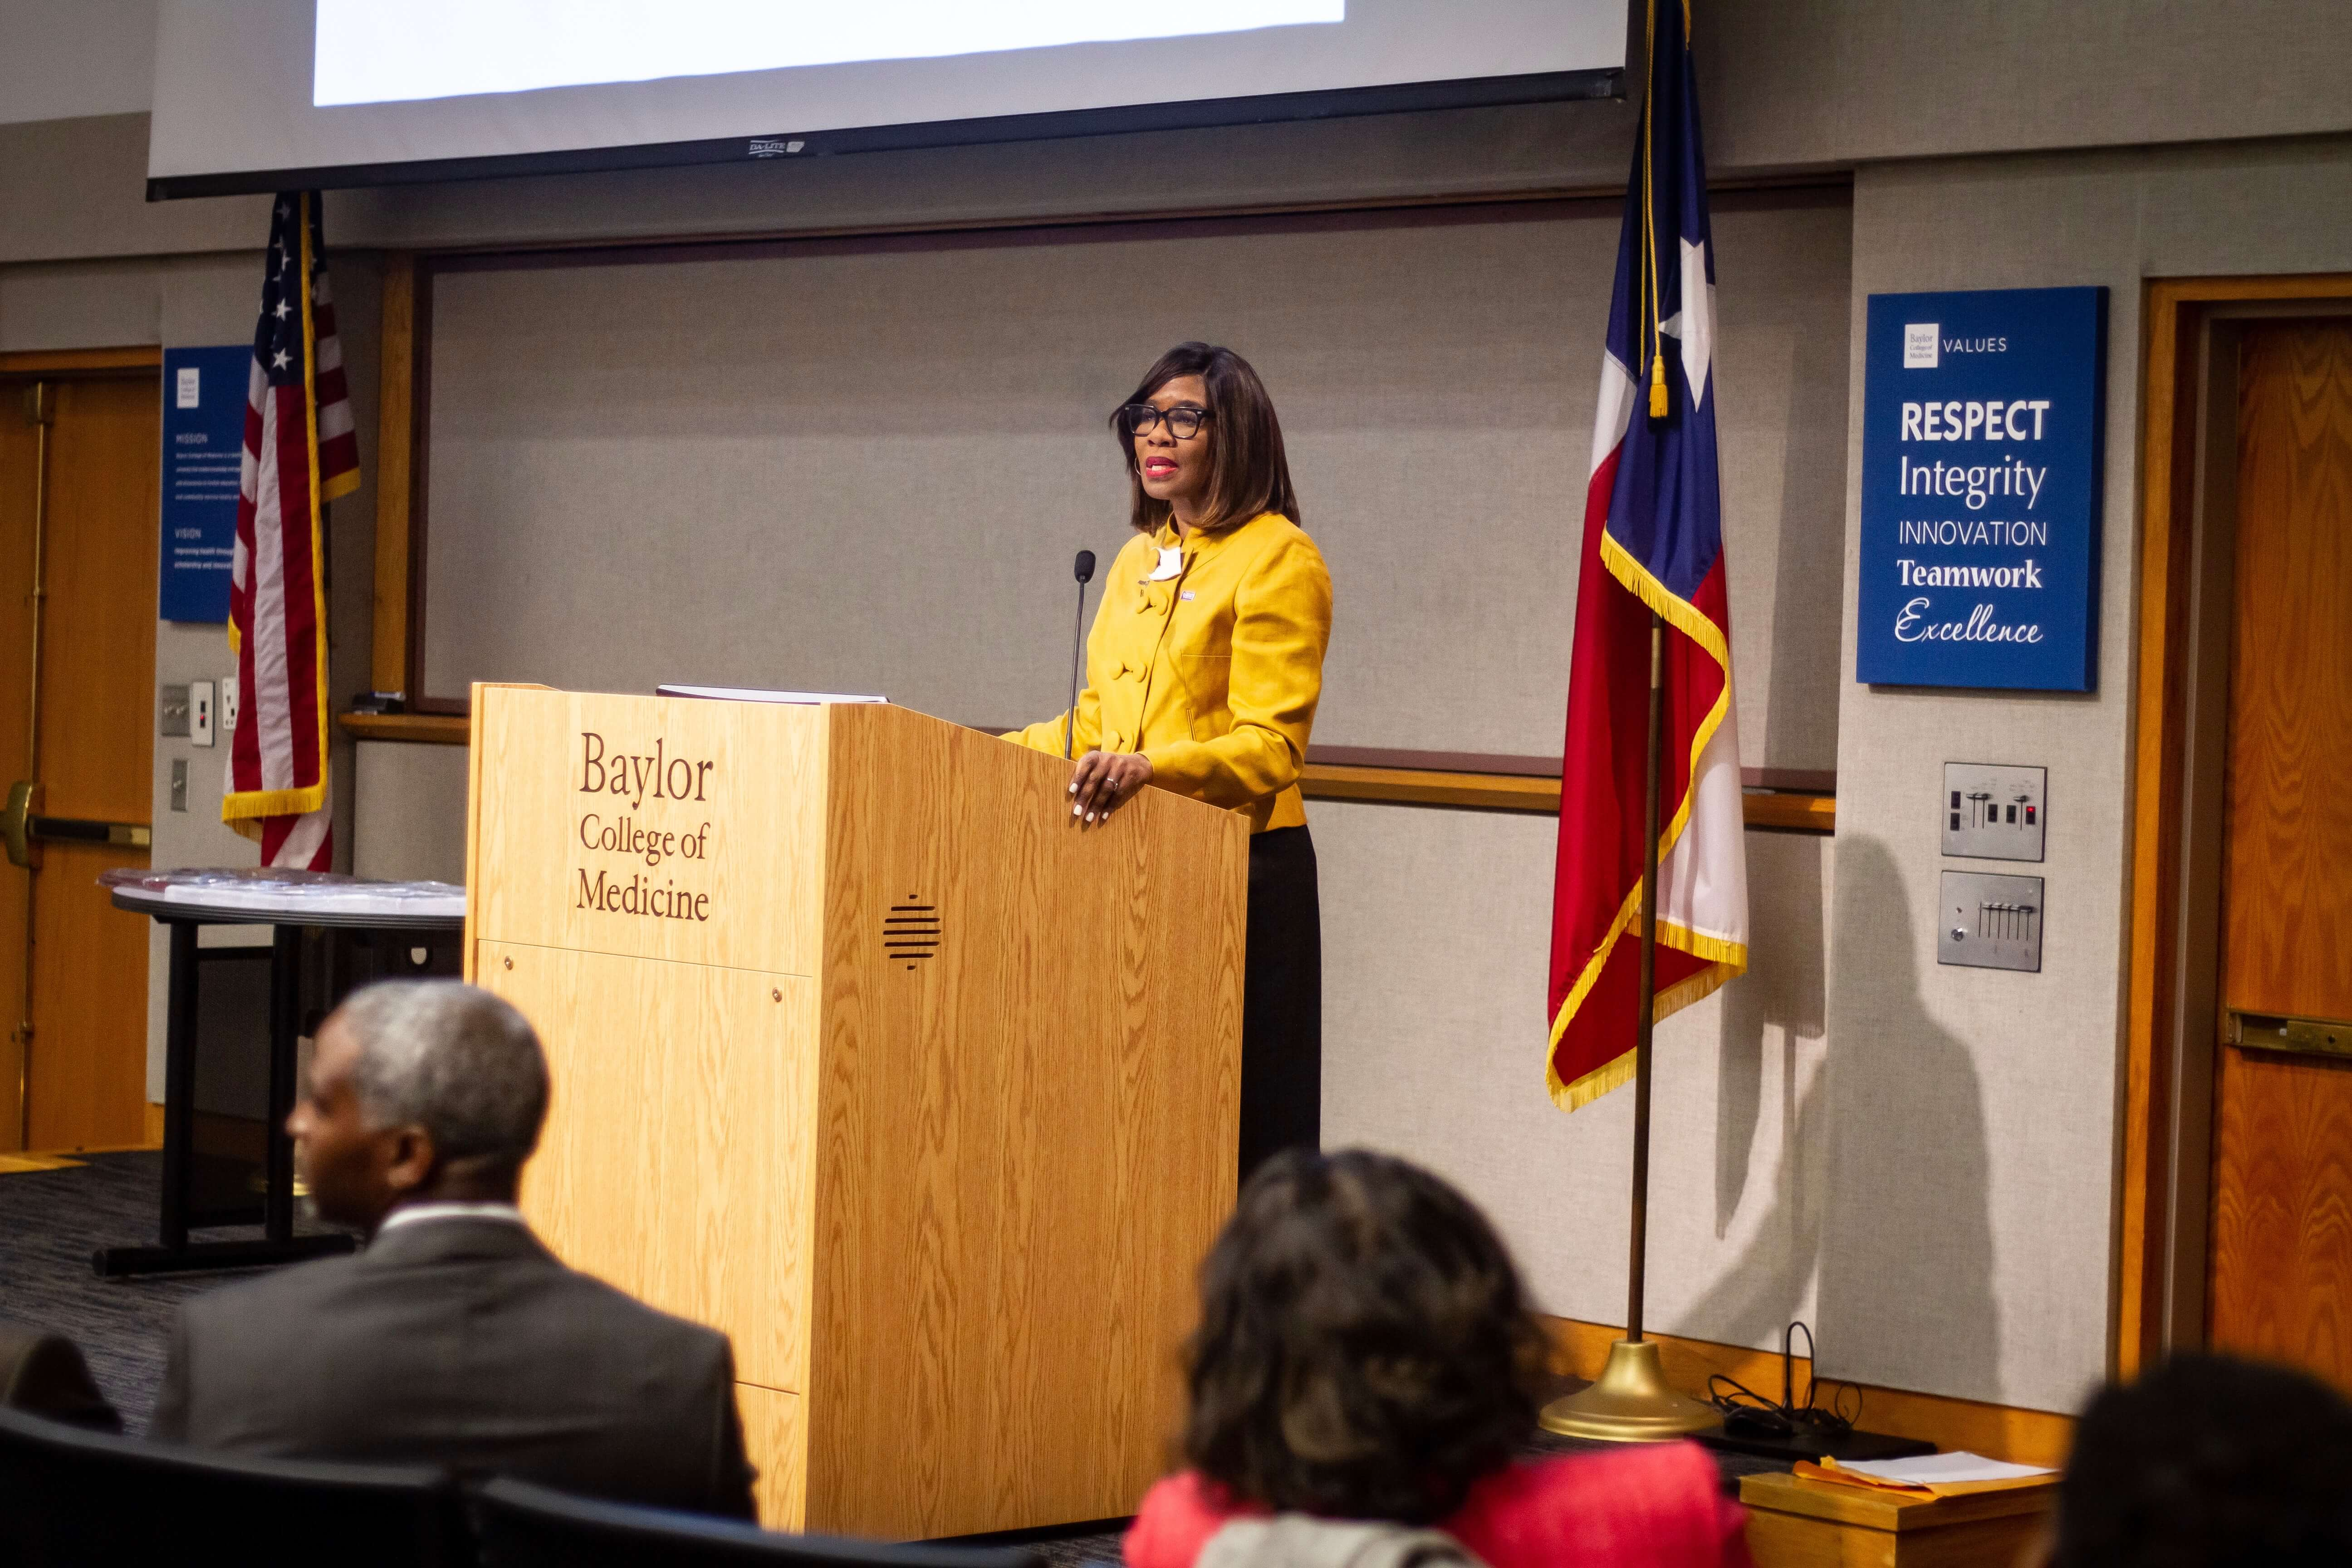 Patrice Harris, M.D., who became the 174th president of the American Medical Association in June 2019, delivers an address at Baylor College of Medicine on June 18, 2019. (Photo courtesy of Baylor College of Medicine)